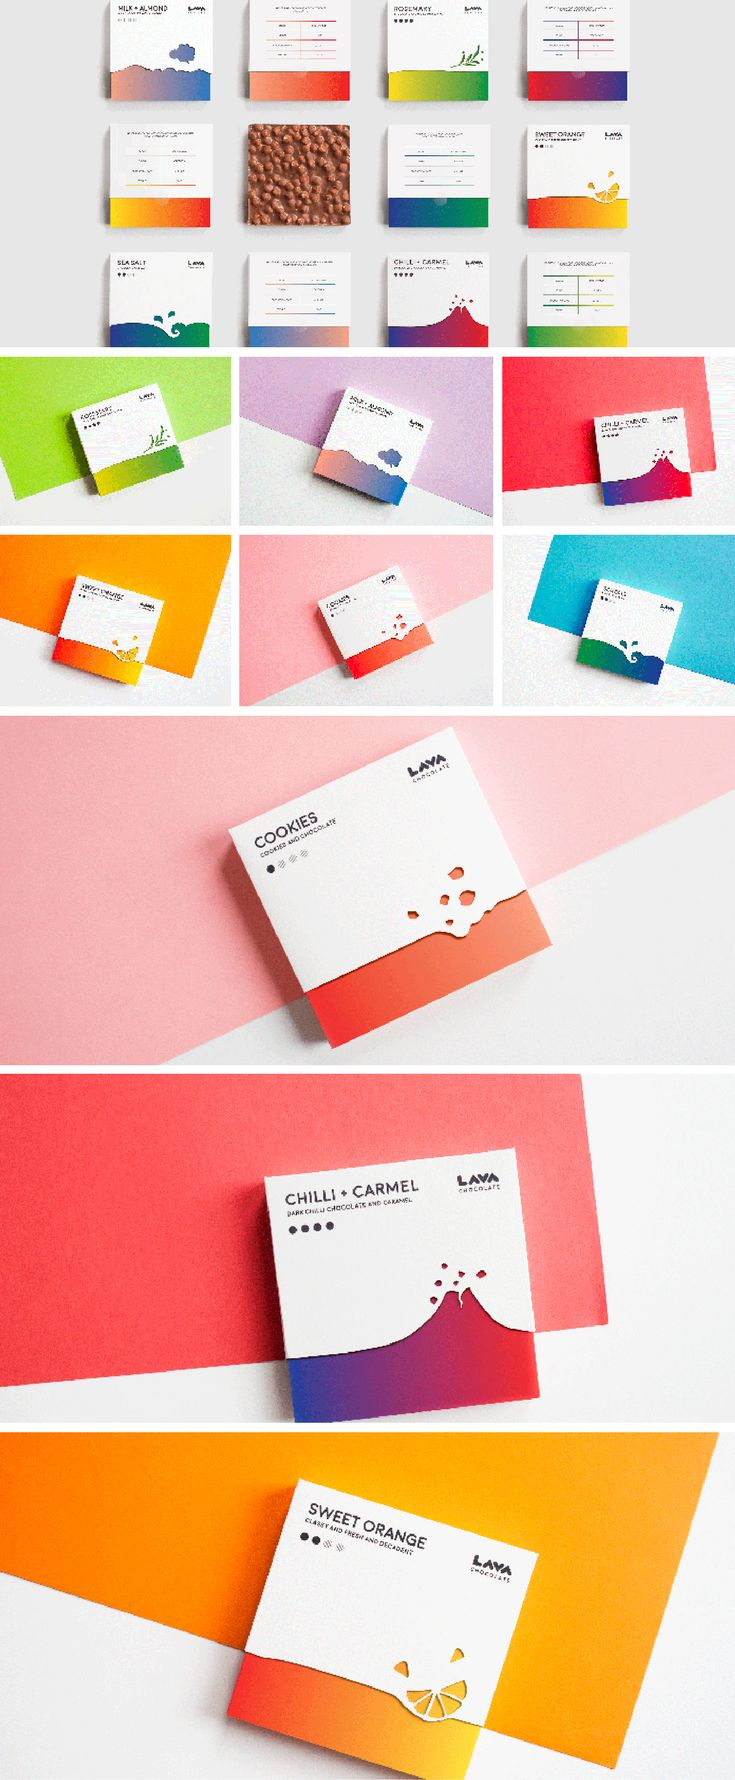 LAVA chocolate packaging designed by Iwona Przybyła, Poland.